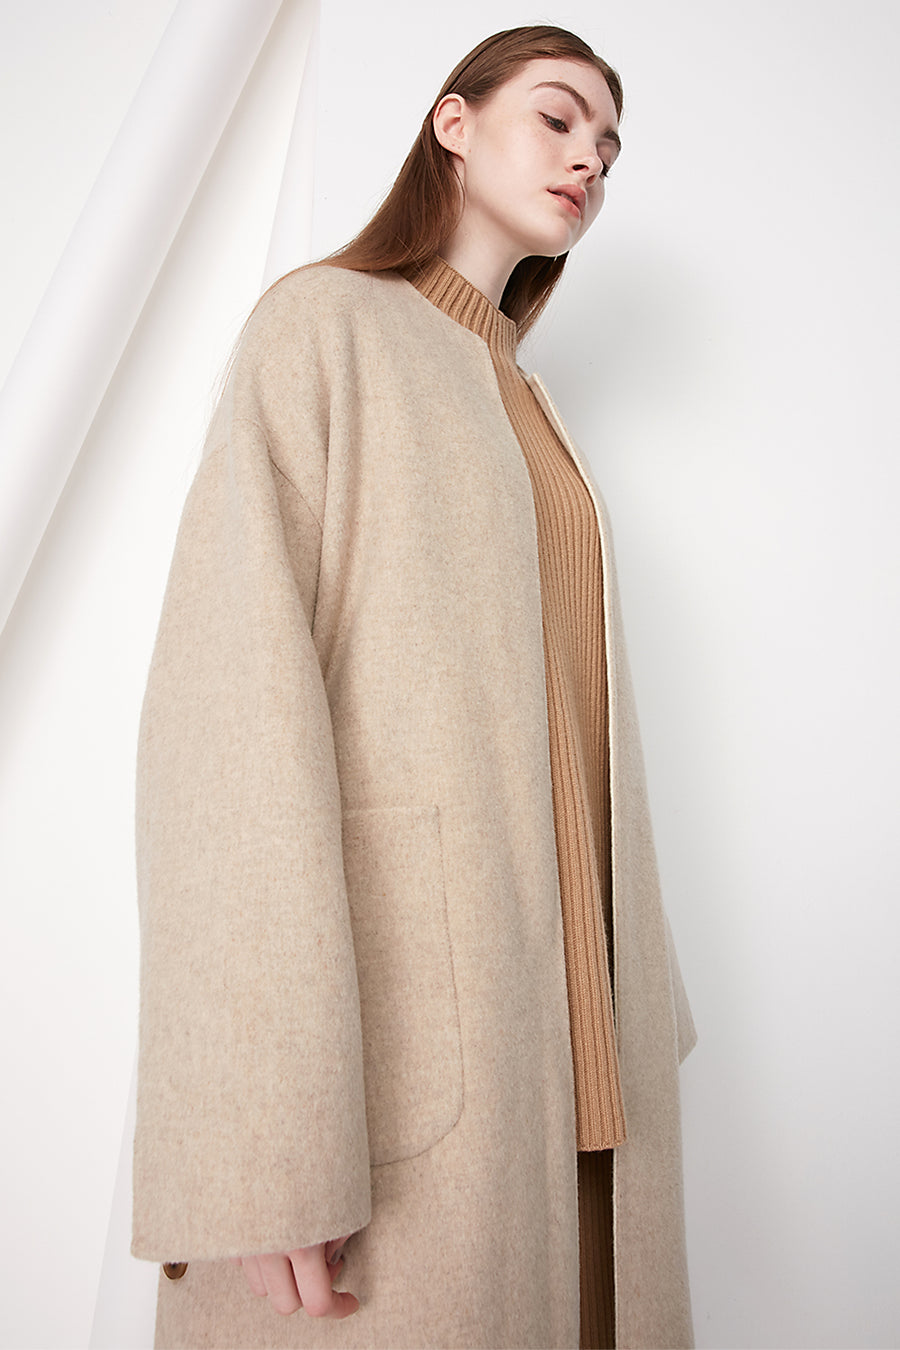 Double-faced wool cocoon coat - Zelle Studio